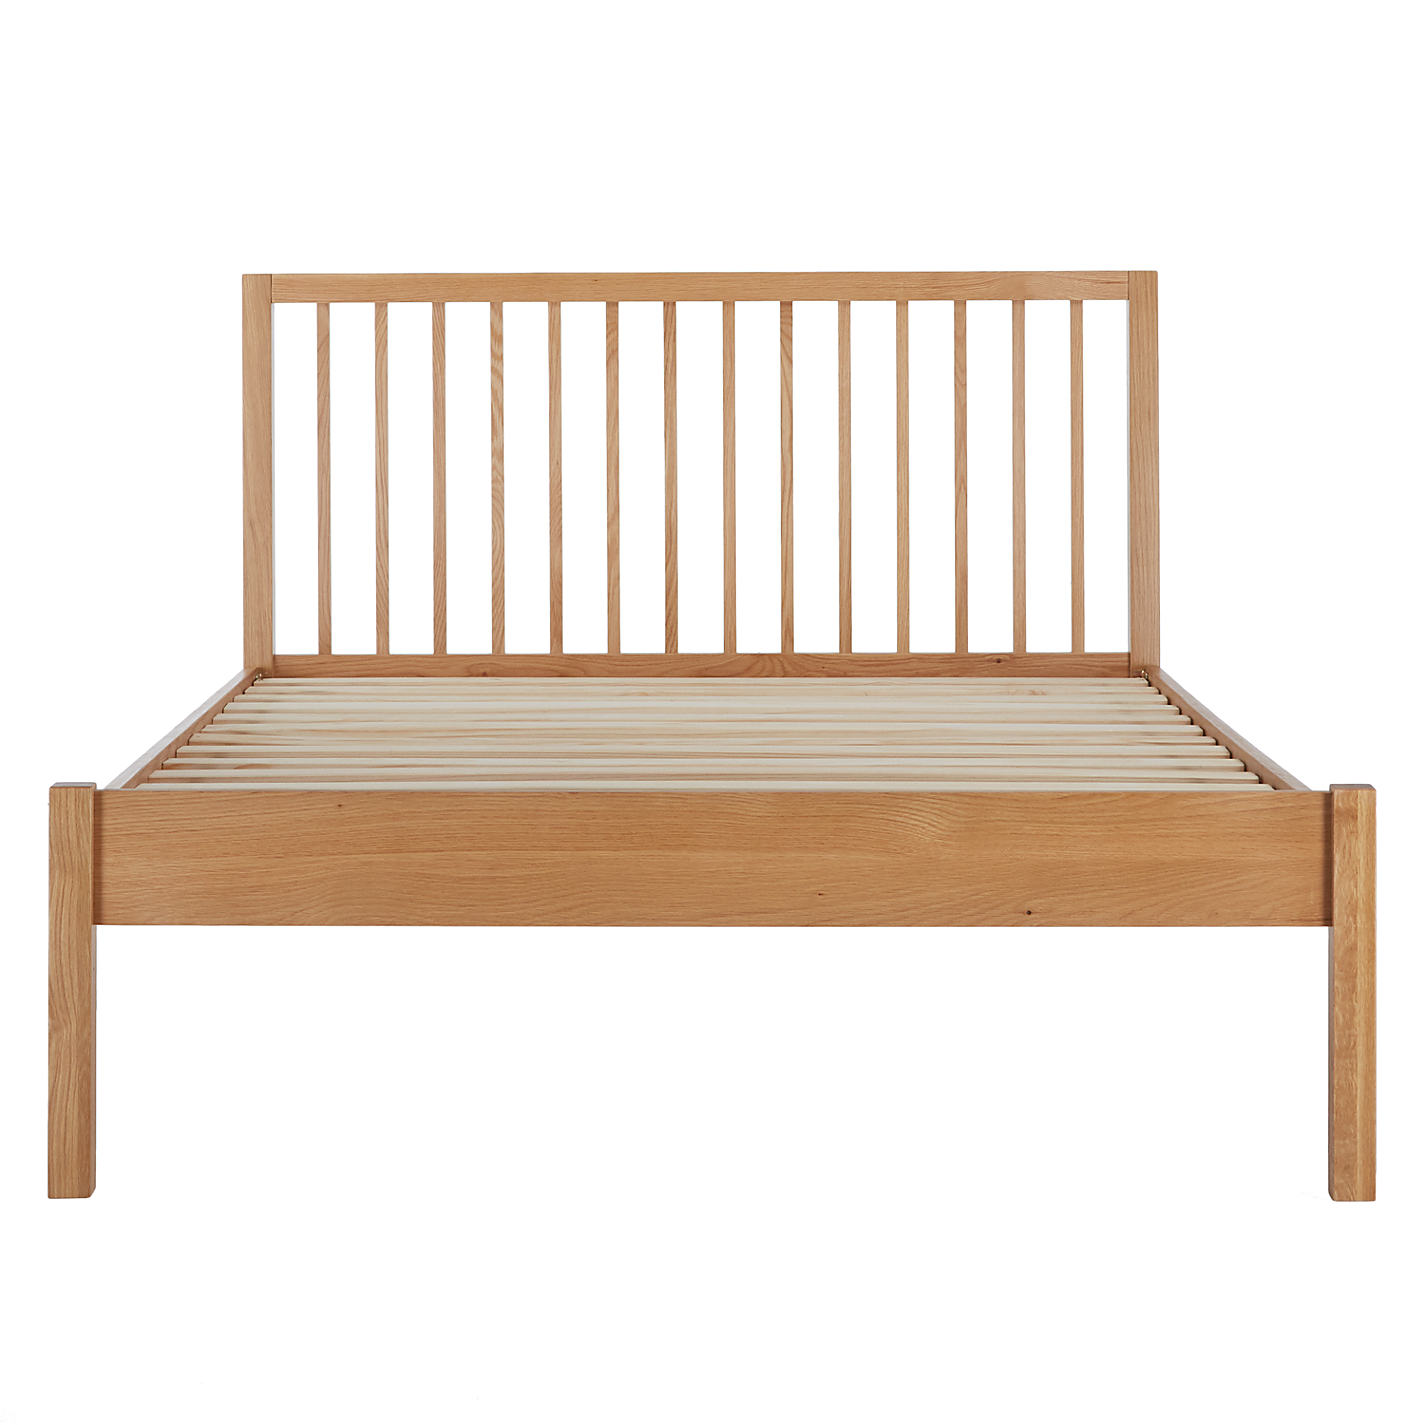 King size bed for sale malaysia large size of bed for Small king bed frame